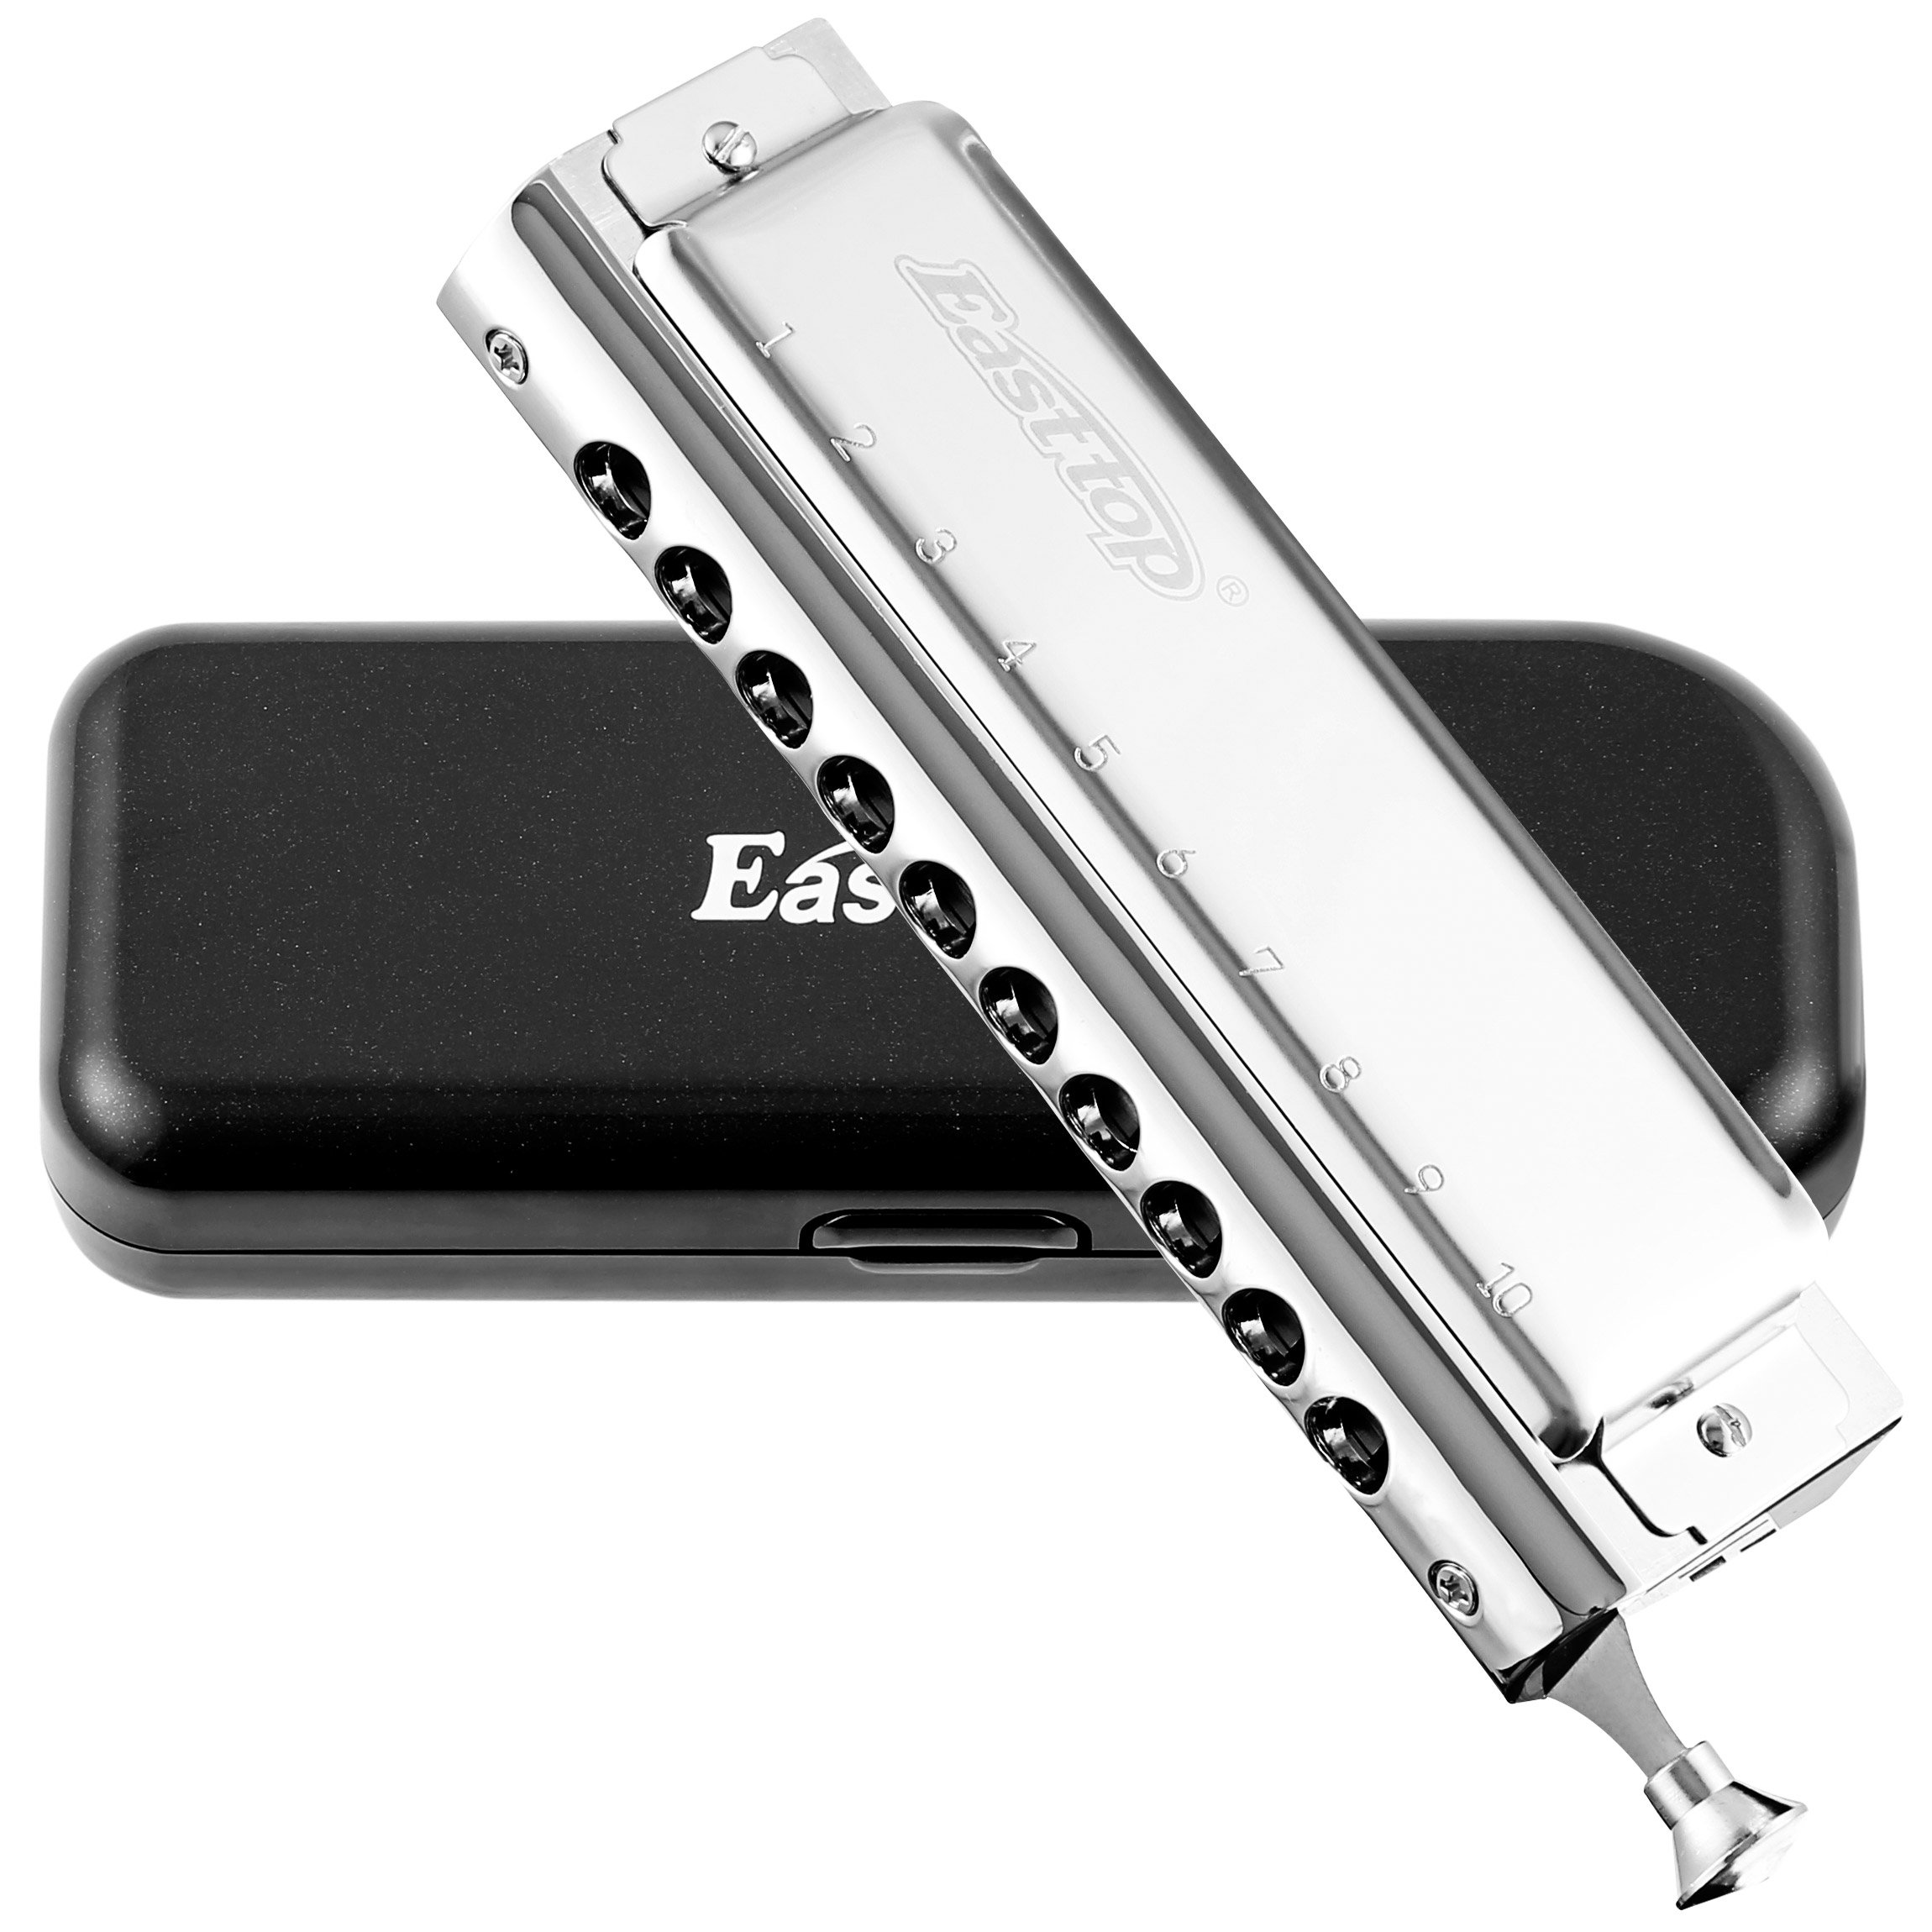 Easttop T10-40 Mouth Organ Harmonica (Key of C) product image